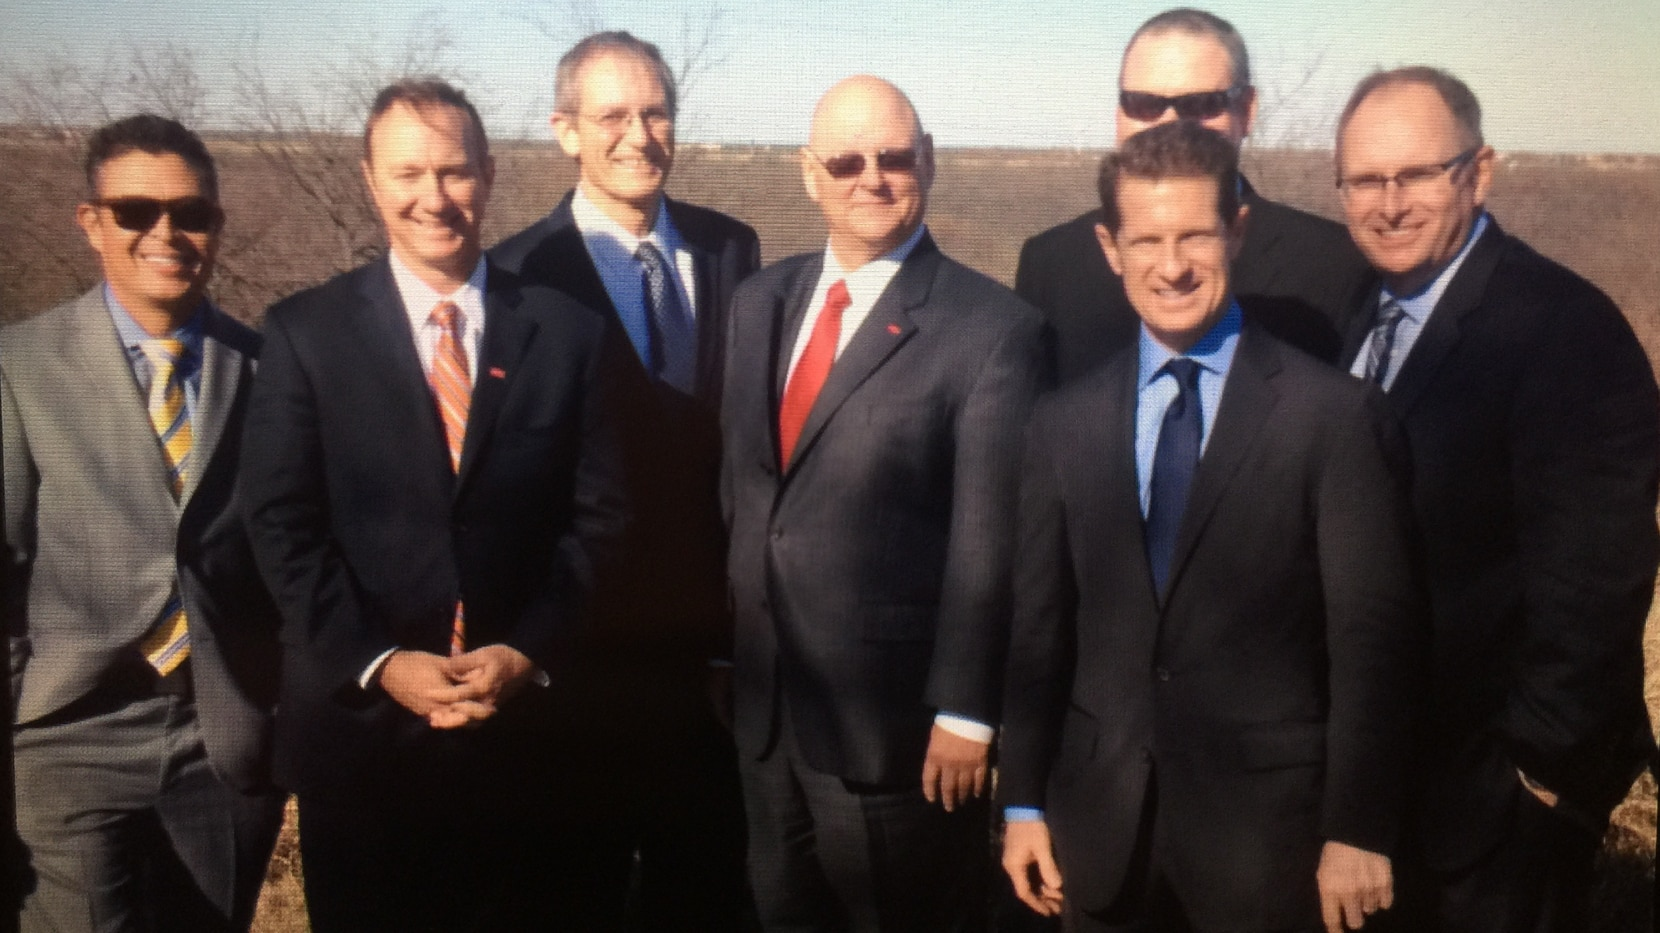 """From left to right: L-R Tony Martinez, David Ovard, George Purefoy, James Gandy, Jason Hase, Darrell Crall and Mark Harrison gathered for  a photo after their Dec. 15, 2014 """"Project PGA"""" meeting in Frisco."""